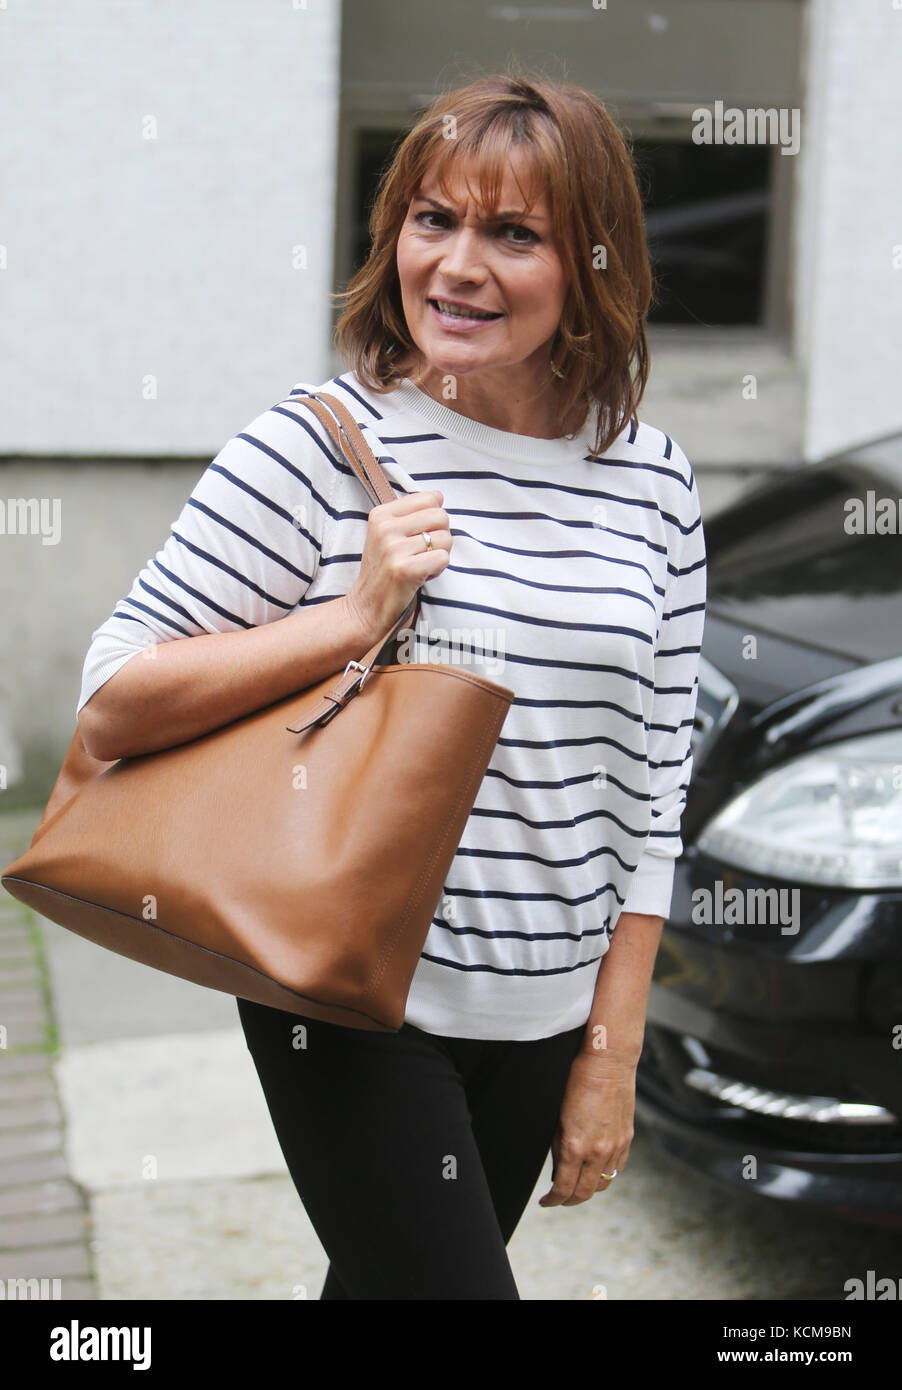 Lorraine Kelly outside ITV Studios  Featuring: Lorraine Kelly Where: London, United Kingdom When: 05 Sep 2017 Credit: - Stock Image